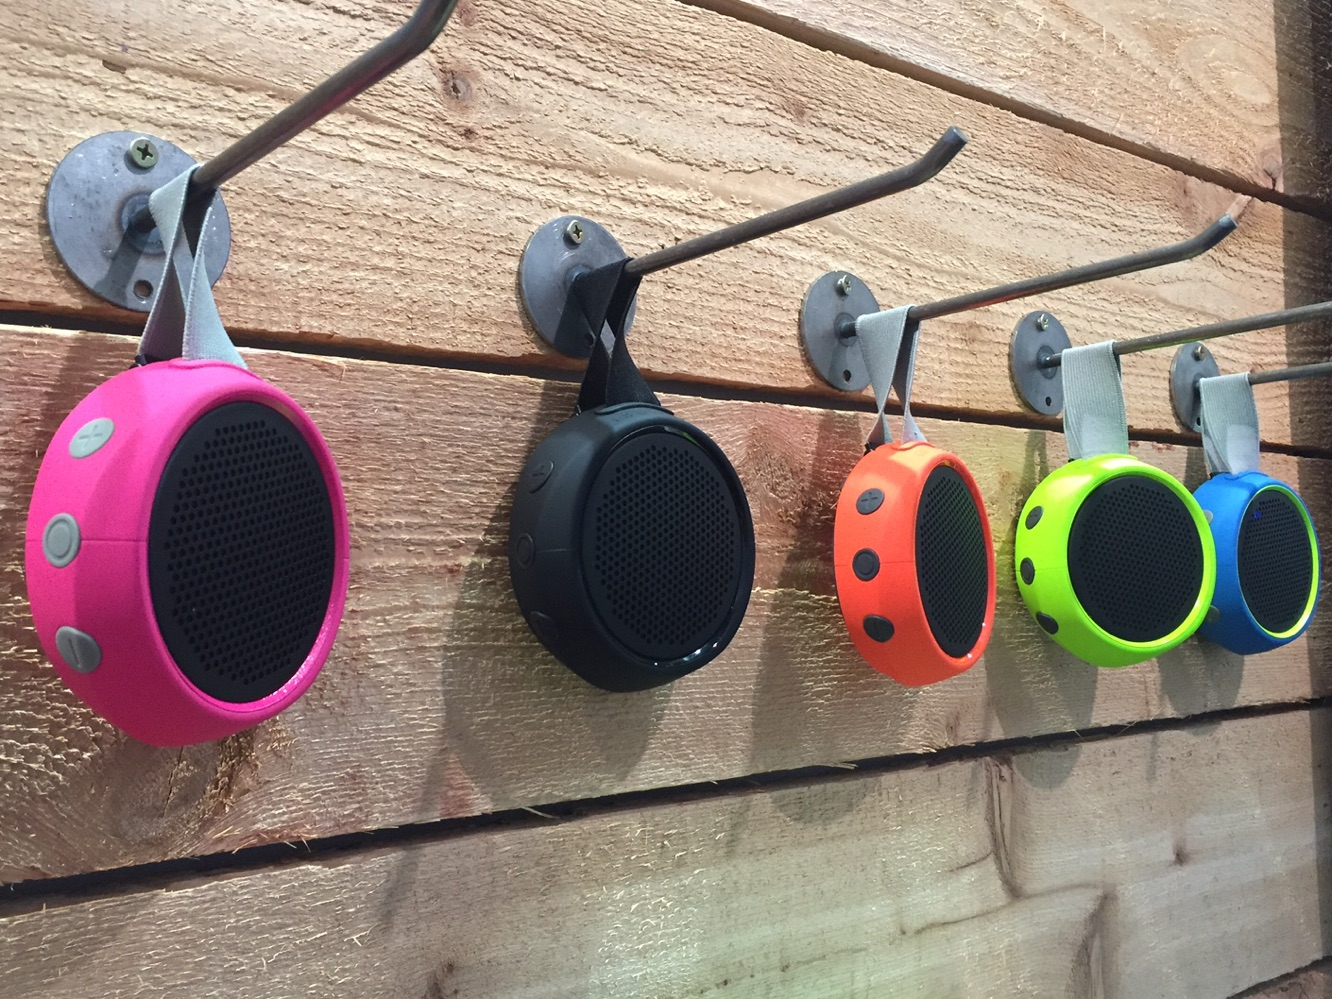 Braven intros new speakers at CES, including the BRV-XXL and BRV-BLADE LE 4